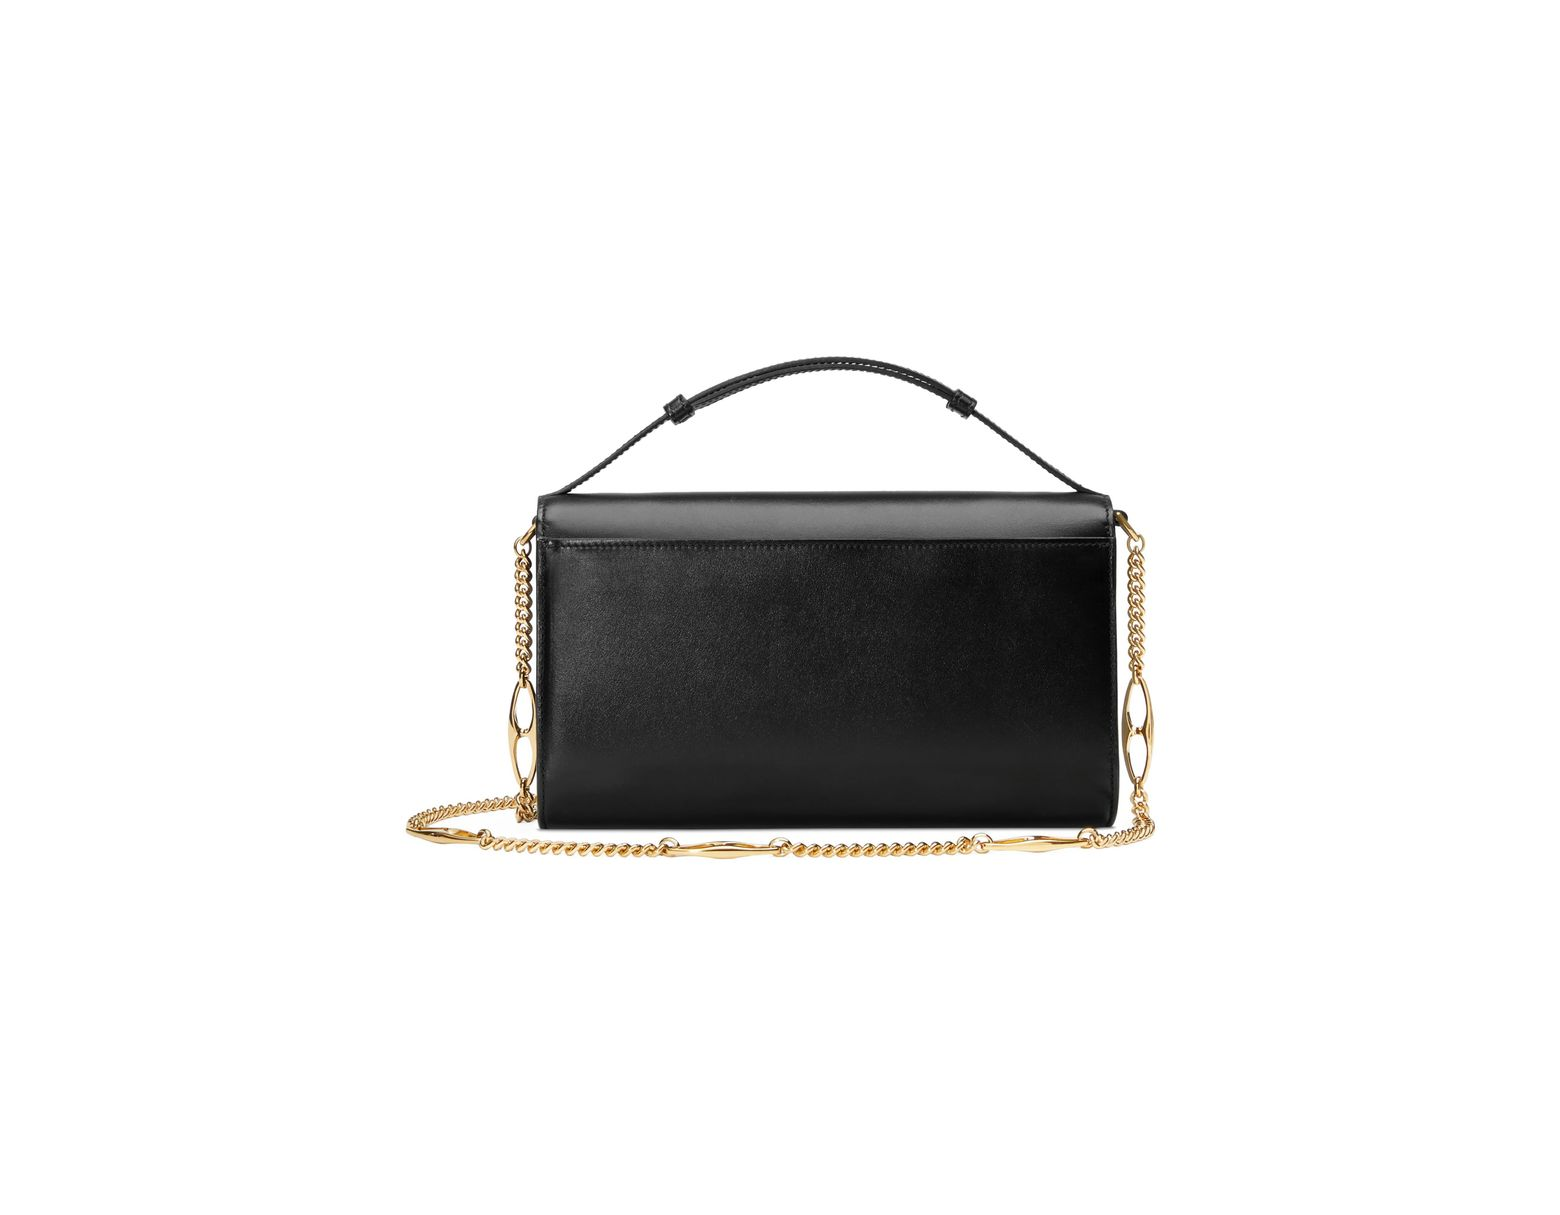 1f40d33bac75 Gucci Zumi Smooth Leather Small Shoulder Bag in Black - Lyst